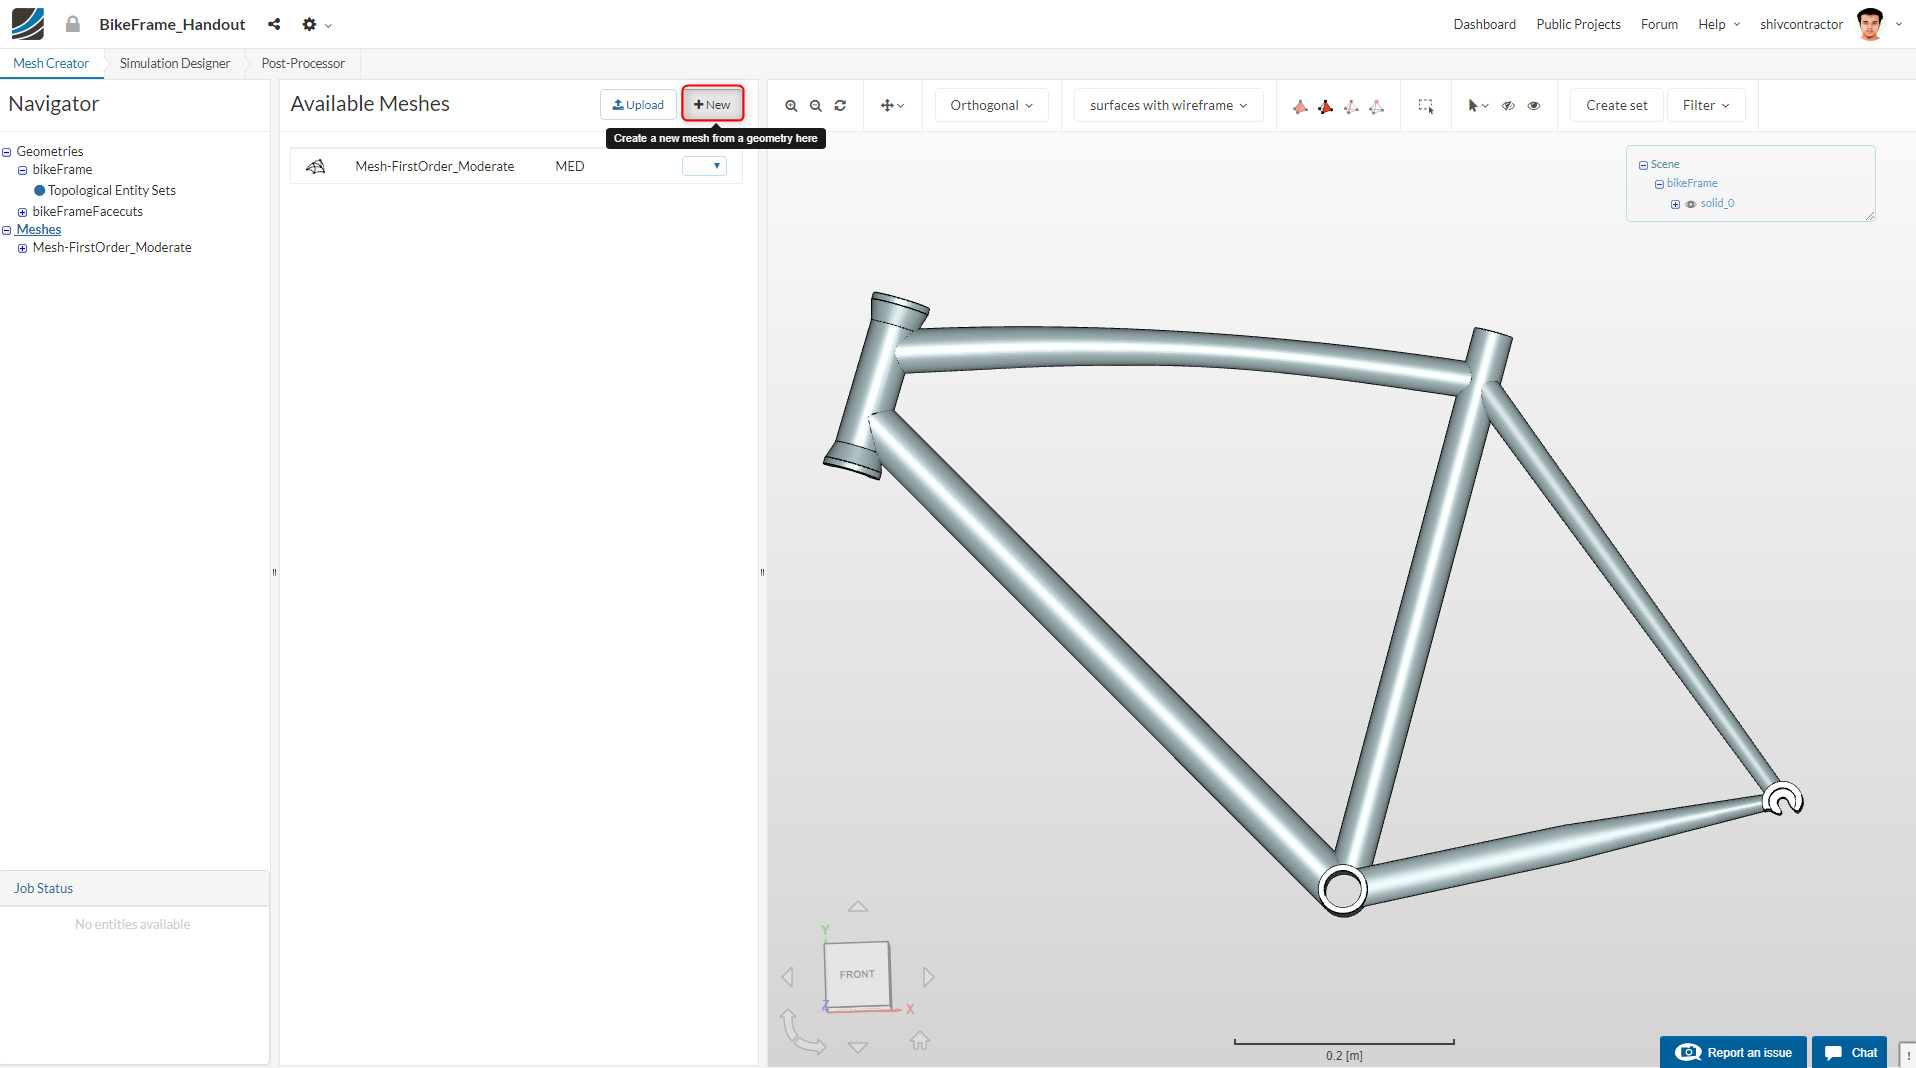 FEA Master Class: Session 1 (Bike Frame Analysis) - FEA Master Class ...